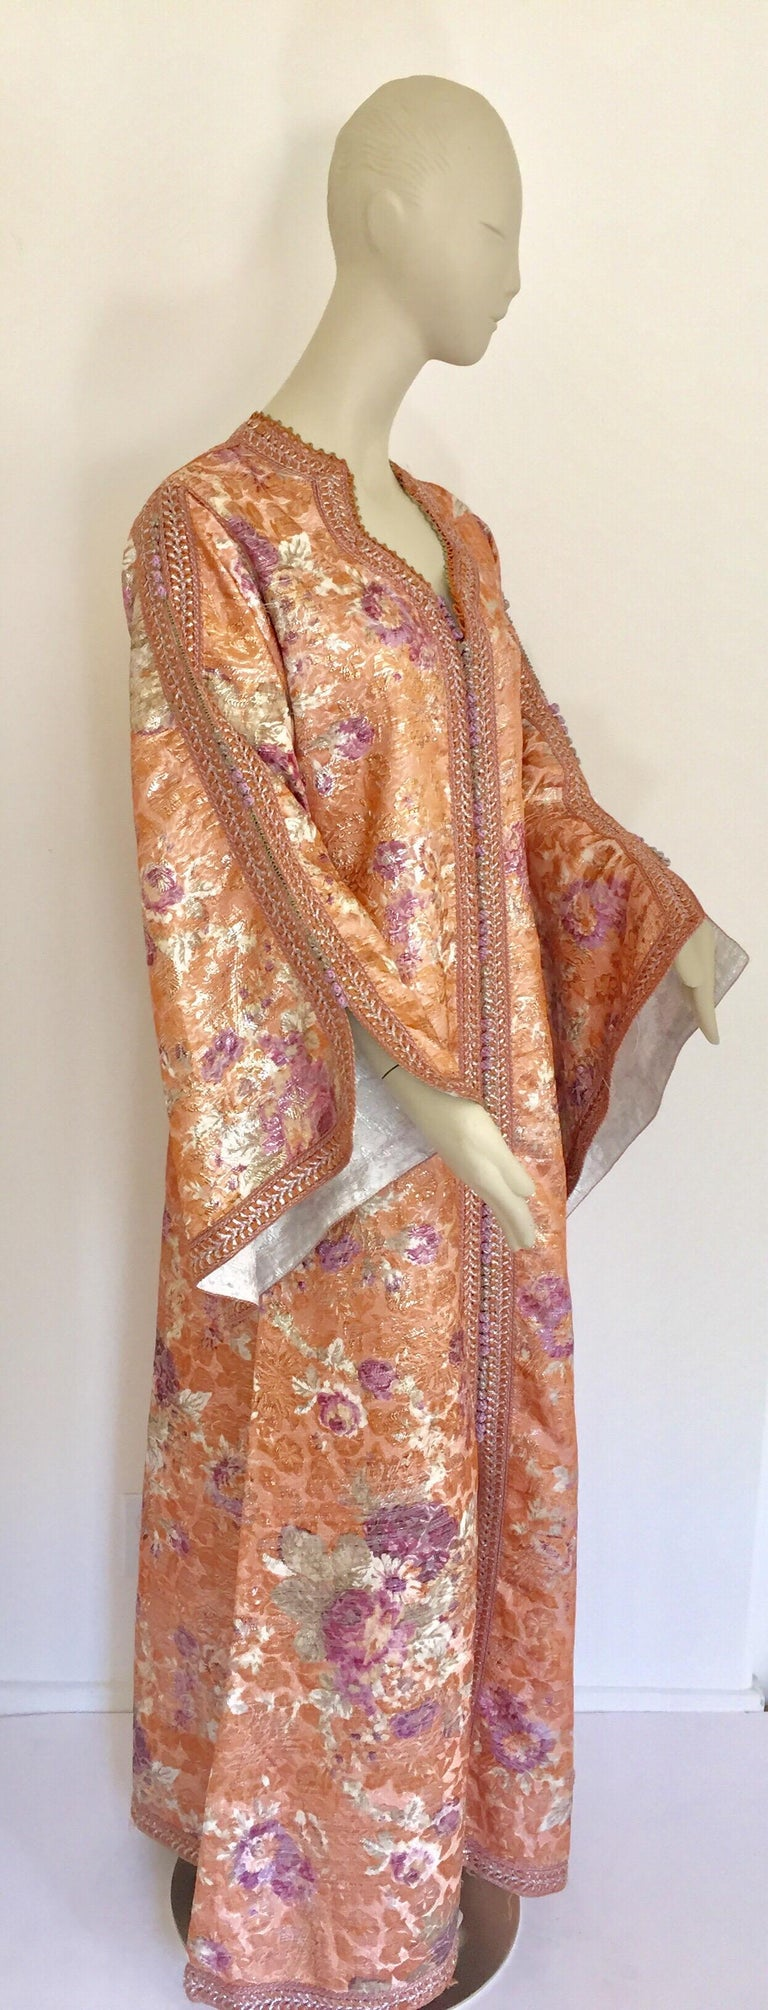 Moroccan Kaftan Orange and Purple Floral with Gold Embroidered Maxi Dress Caftan For Sale 6